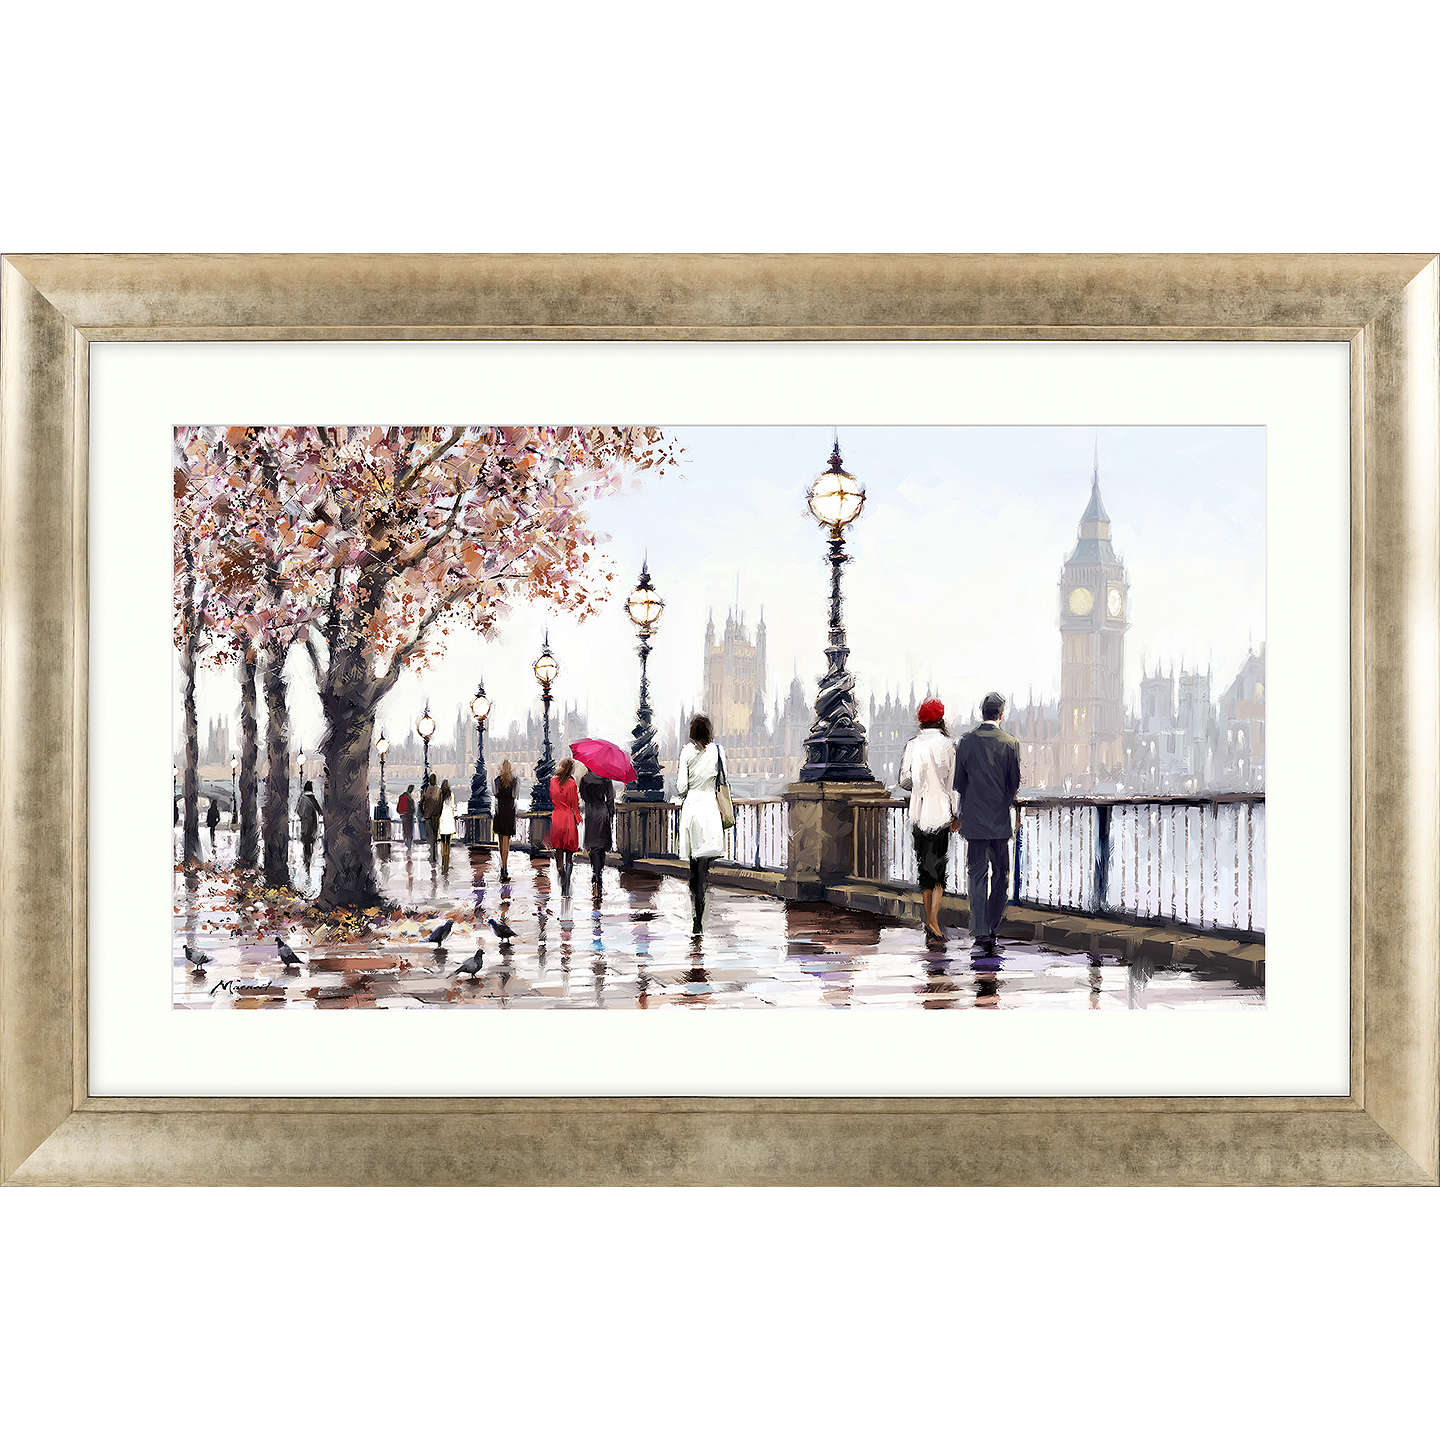 BuyRichard Macneil - Thames View Framed Print, 112 x 72cm Online at johnlewis.com